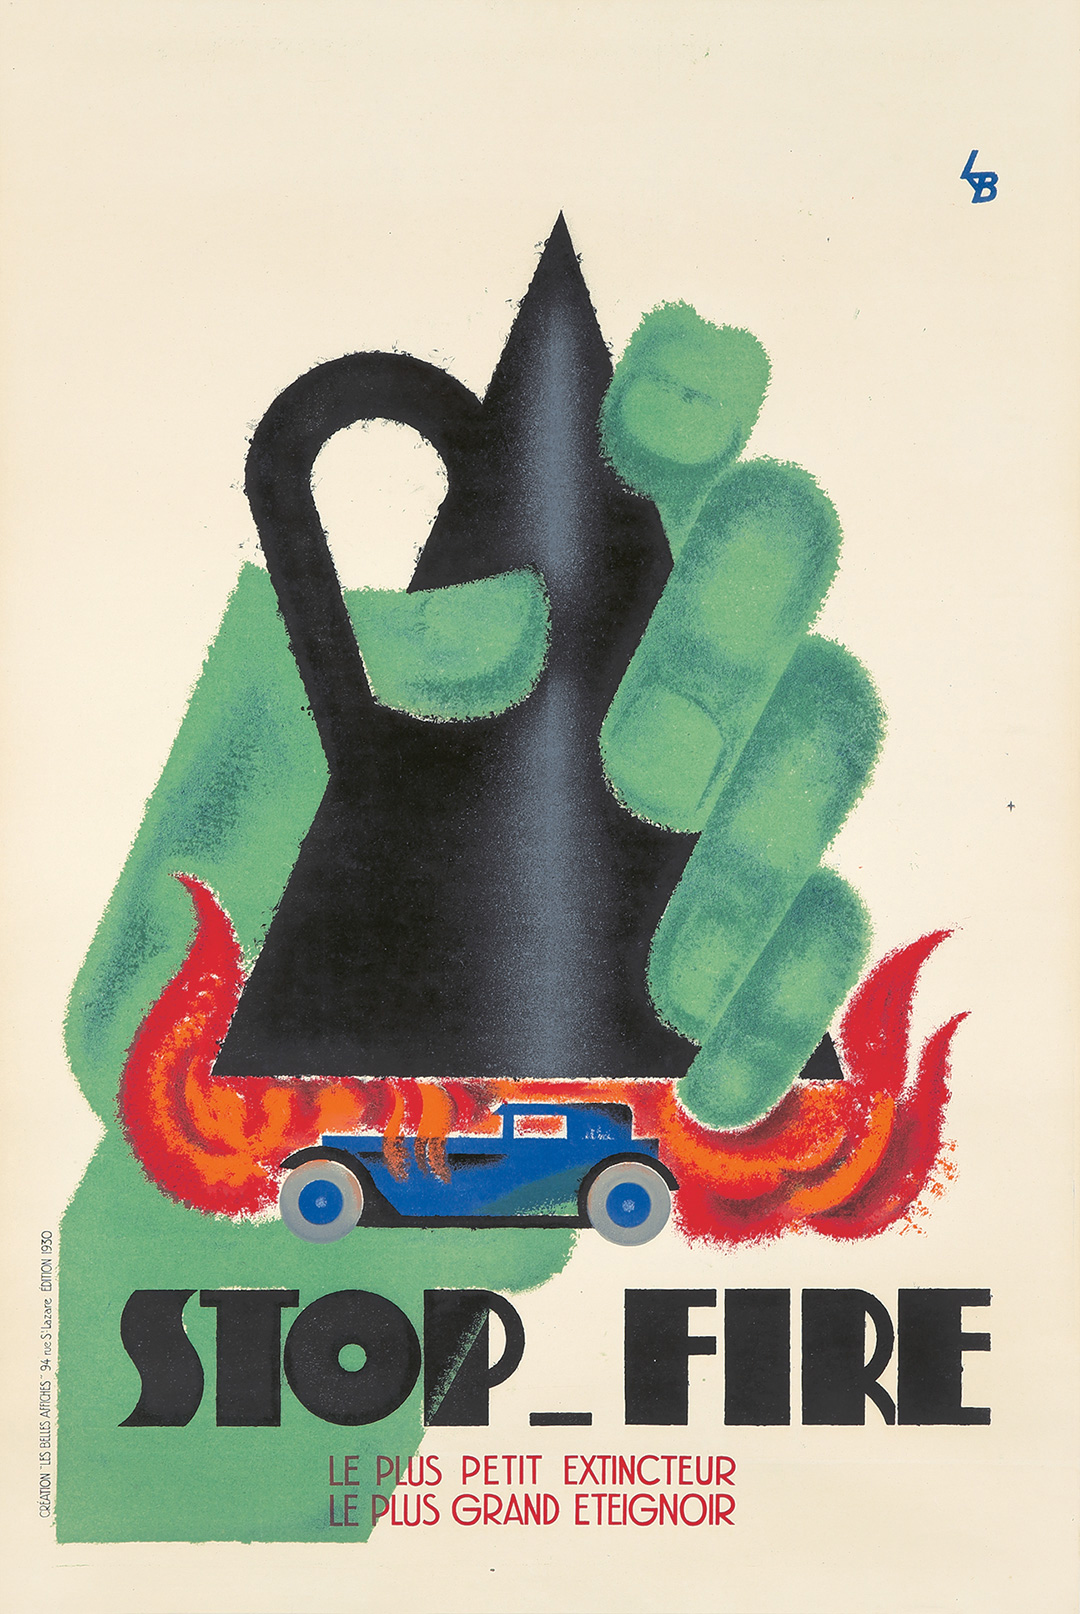 332. Stop-Fire. 1930.